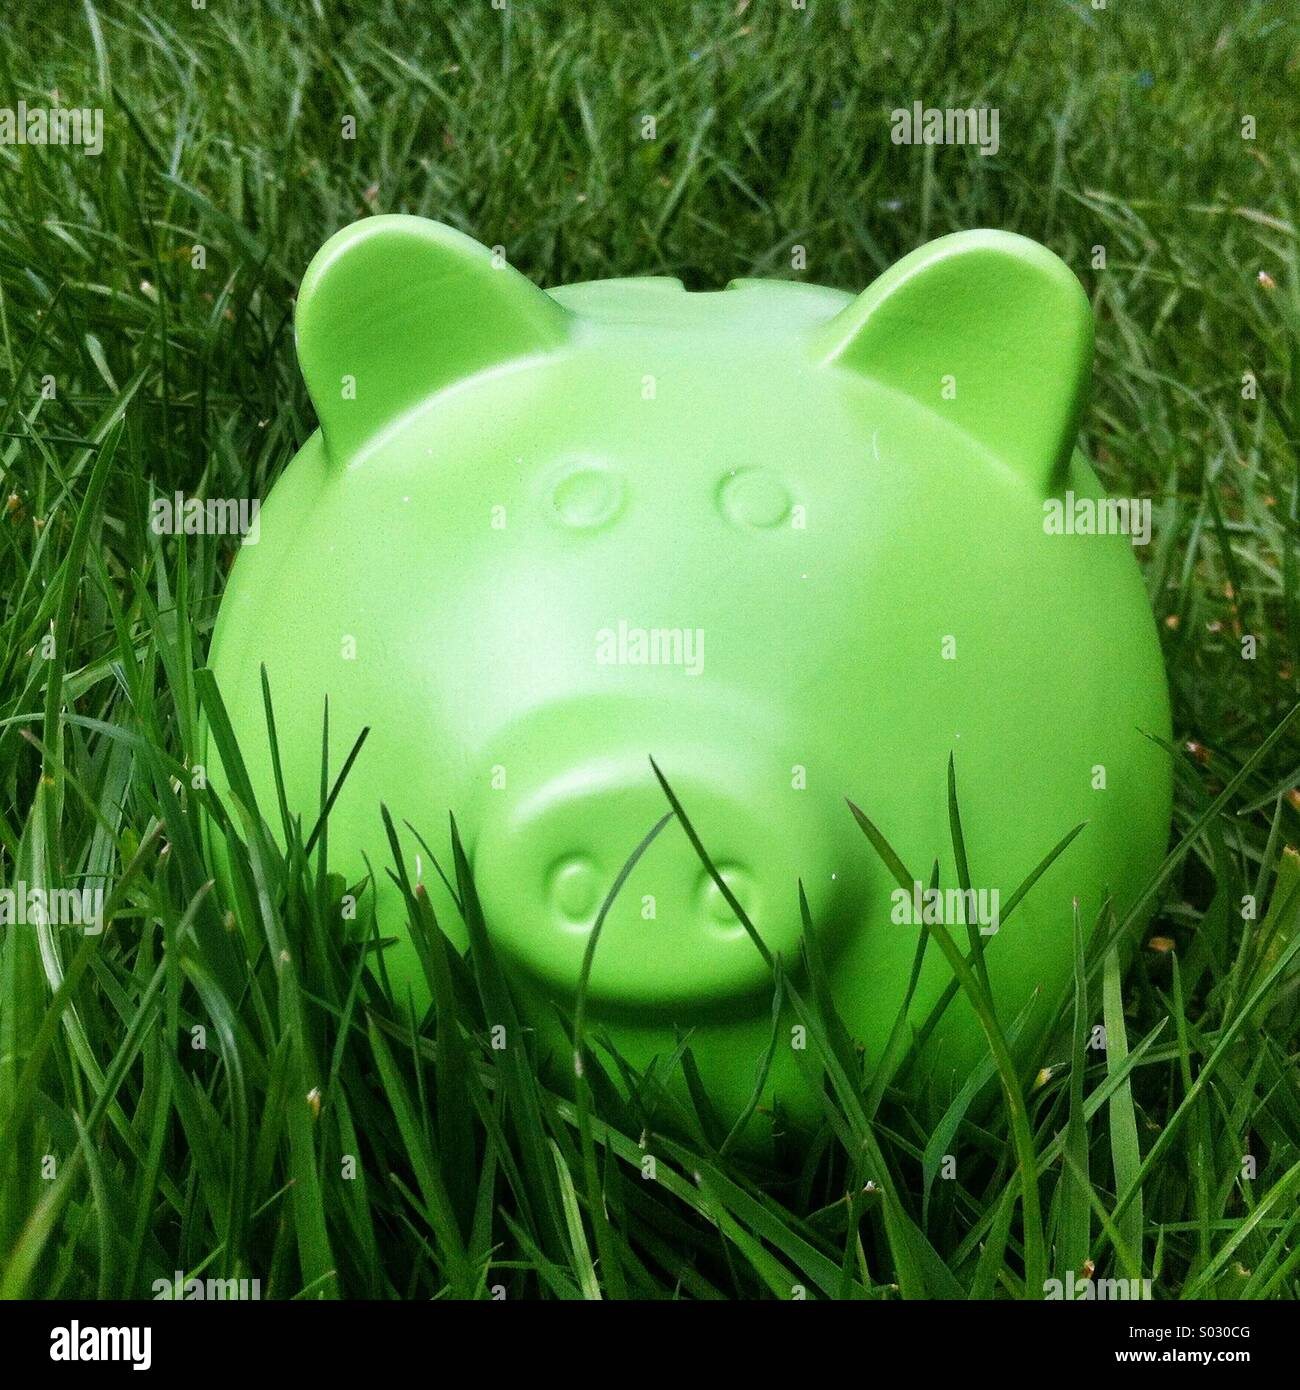 Green piggy bank style money box in long green - Stock Image